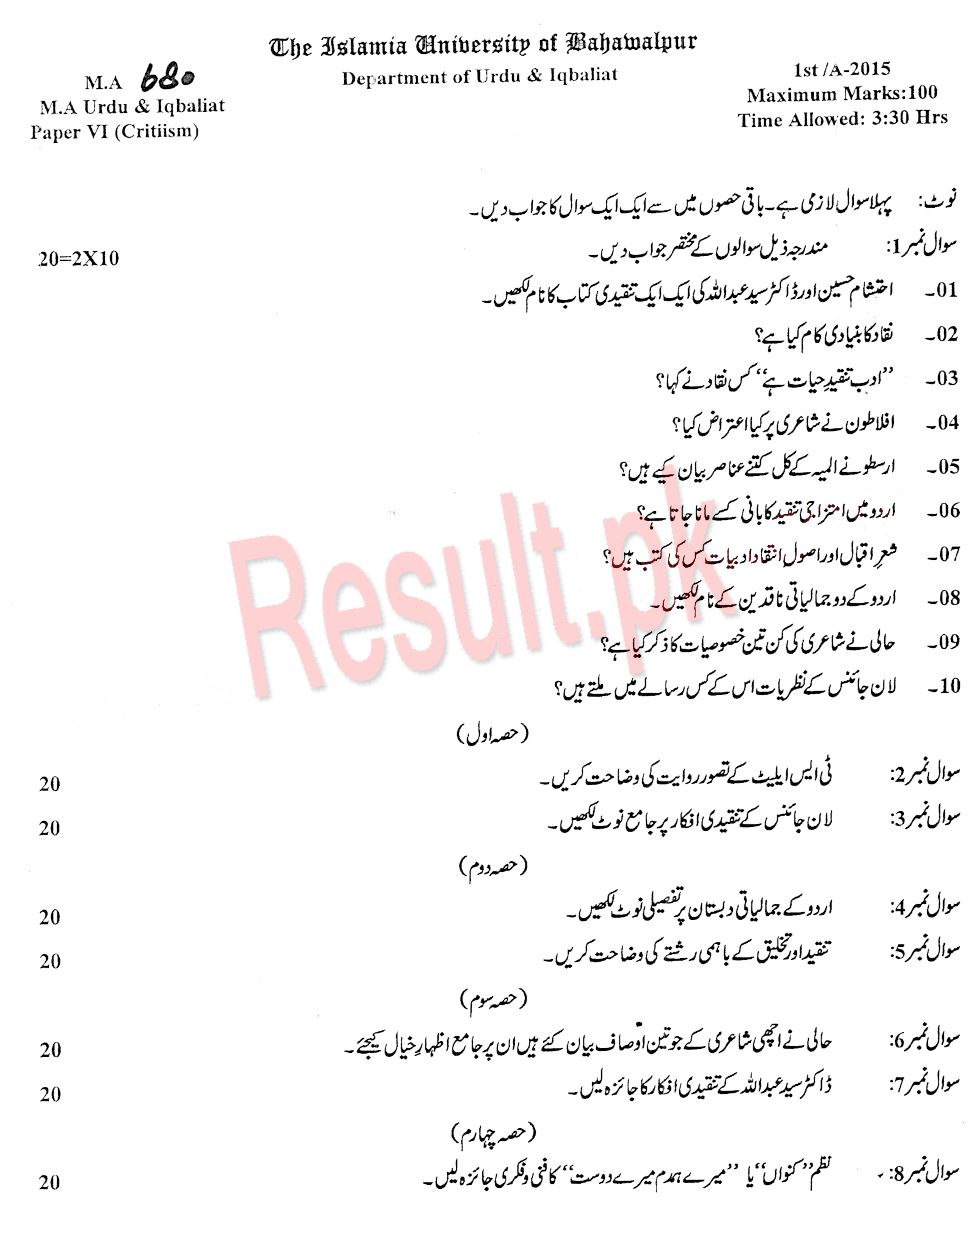 Punjab University Past Papers 2018, 2017, 2016, pu Past & Model Papers